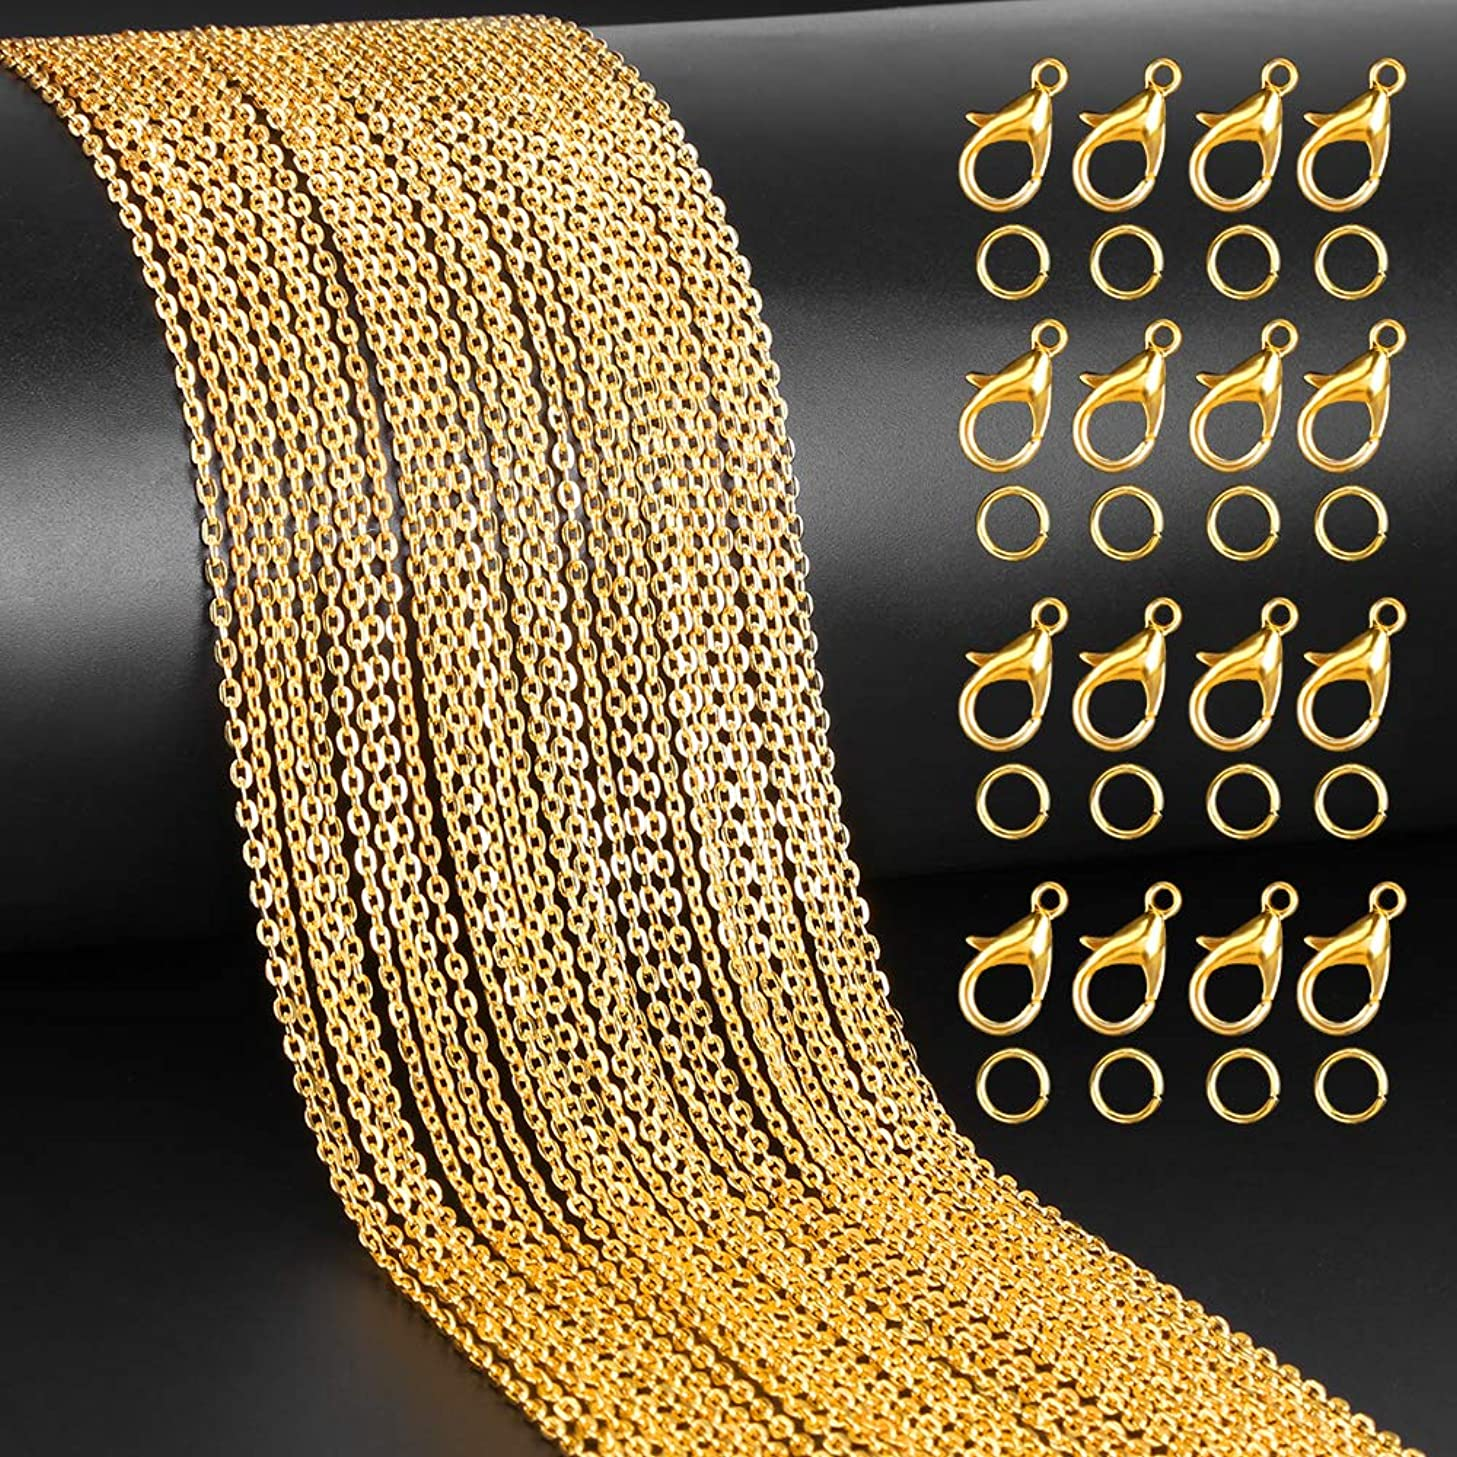 YBLNTEK 39.4 Feet Jewelry Making Chains Gold Link Chain Necklace with 100 Pieces Jump Rings and 30 Pieces Lobster Clasps for Jewelry Making Jewelry Repair (2 x 3 mm)